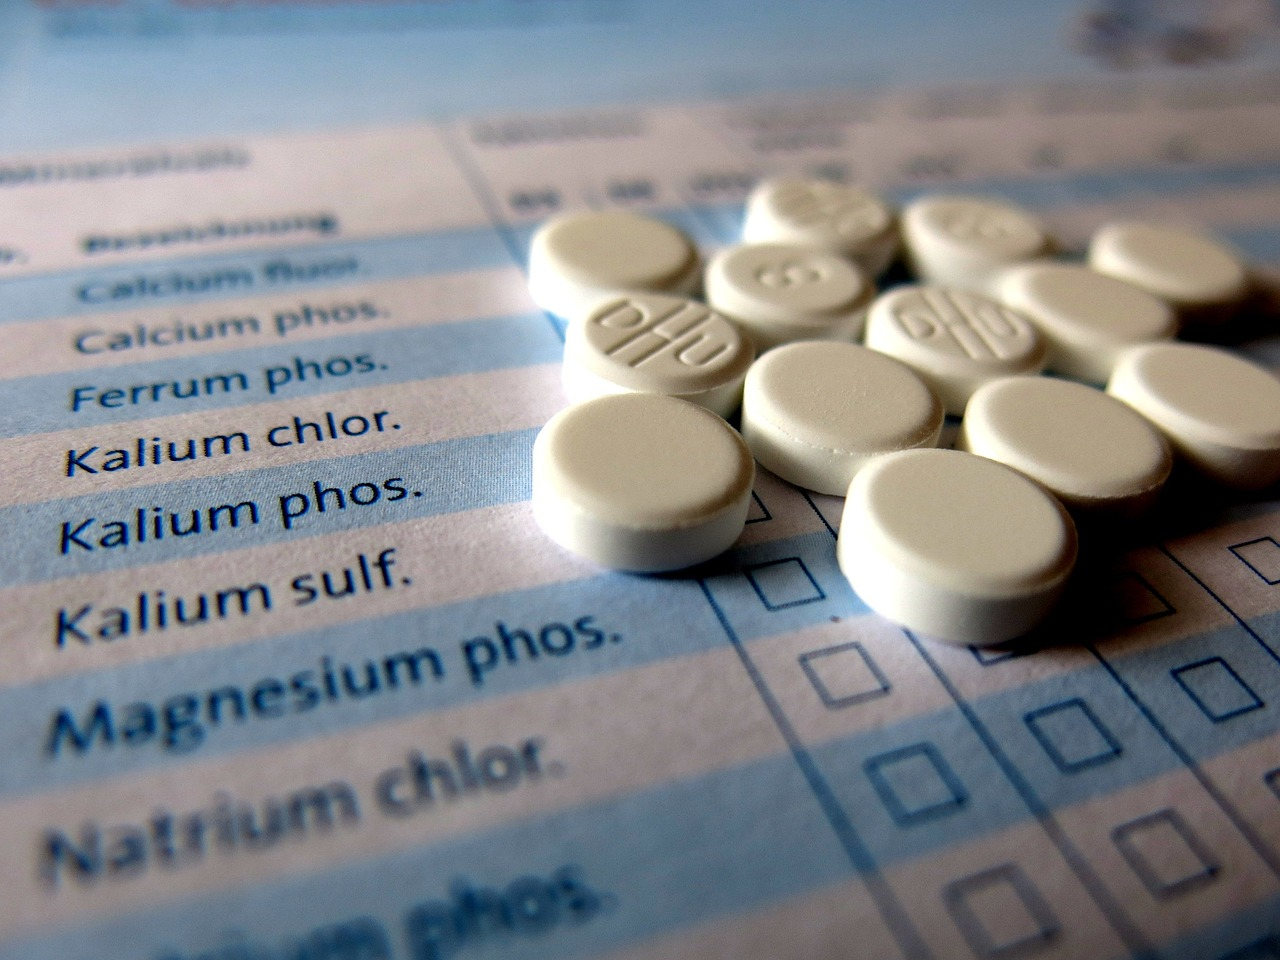 Pharmacovigilance regulations, requirements, guidelines